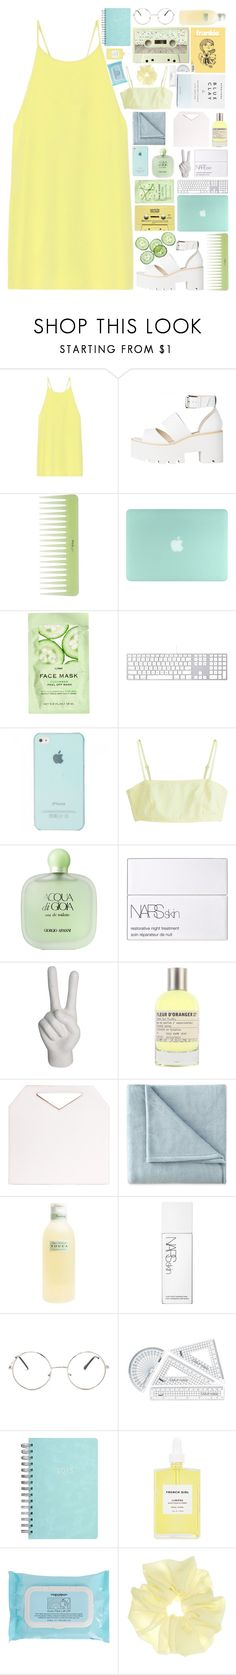 """""""❤"""" by angelina188 ❤ liked on Polyvore featuring TIBI, CASSETTE, H&M, MTWTFSS Weekday, Giorgio Armani, NARS Cosmetics, nOir, Le Labo, Imago-A and JCPenney Home"""